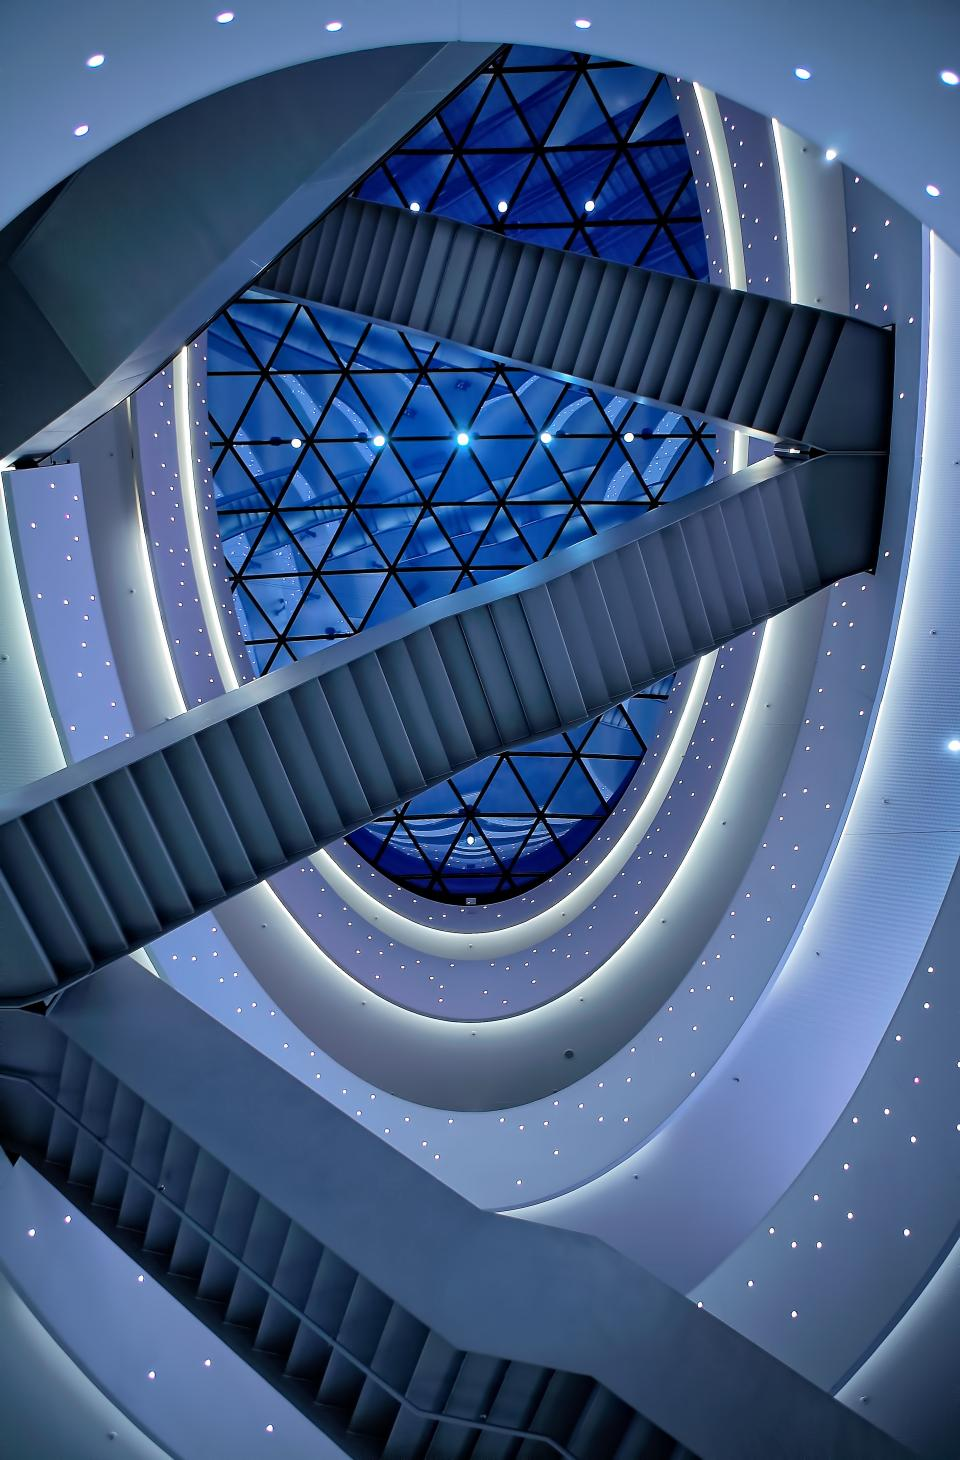 architecture blue building infrastructure interior stairs ceiling design